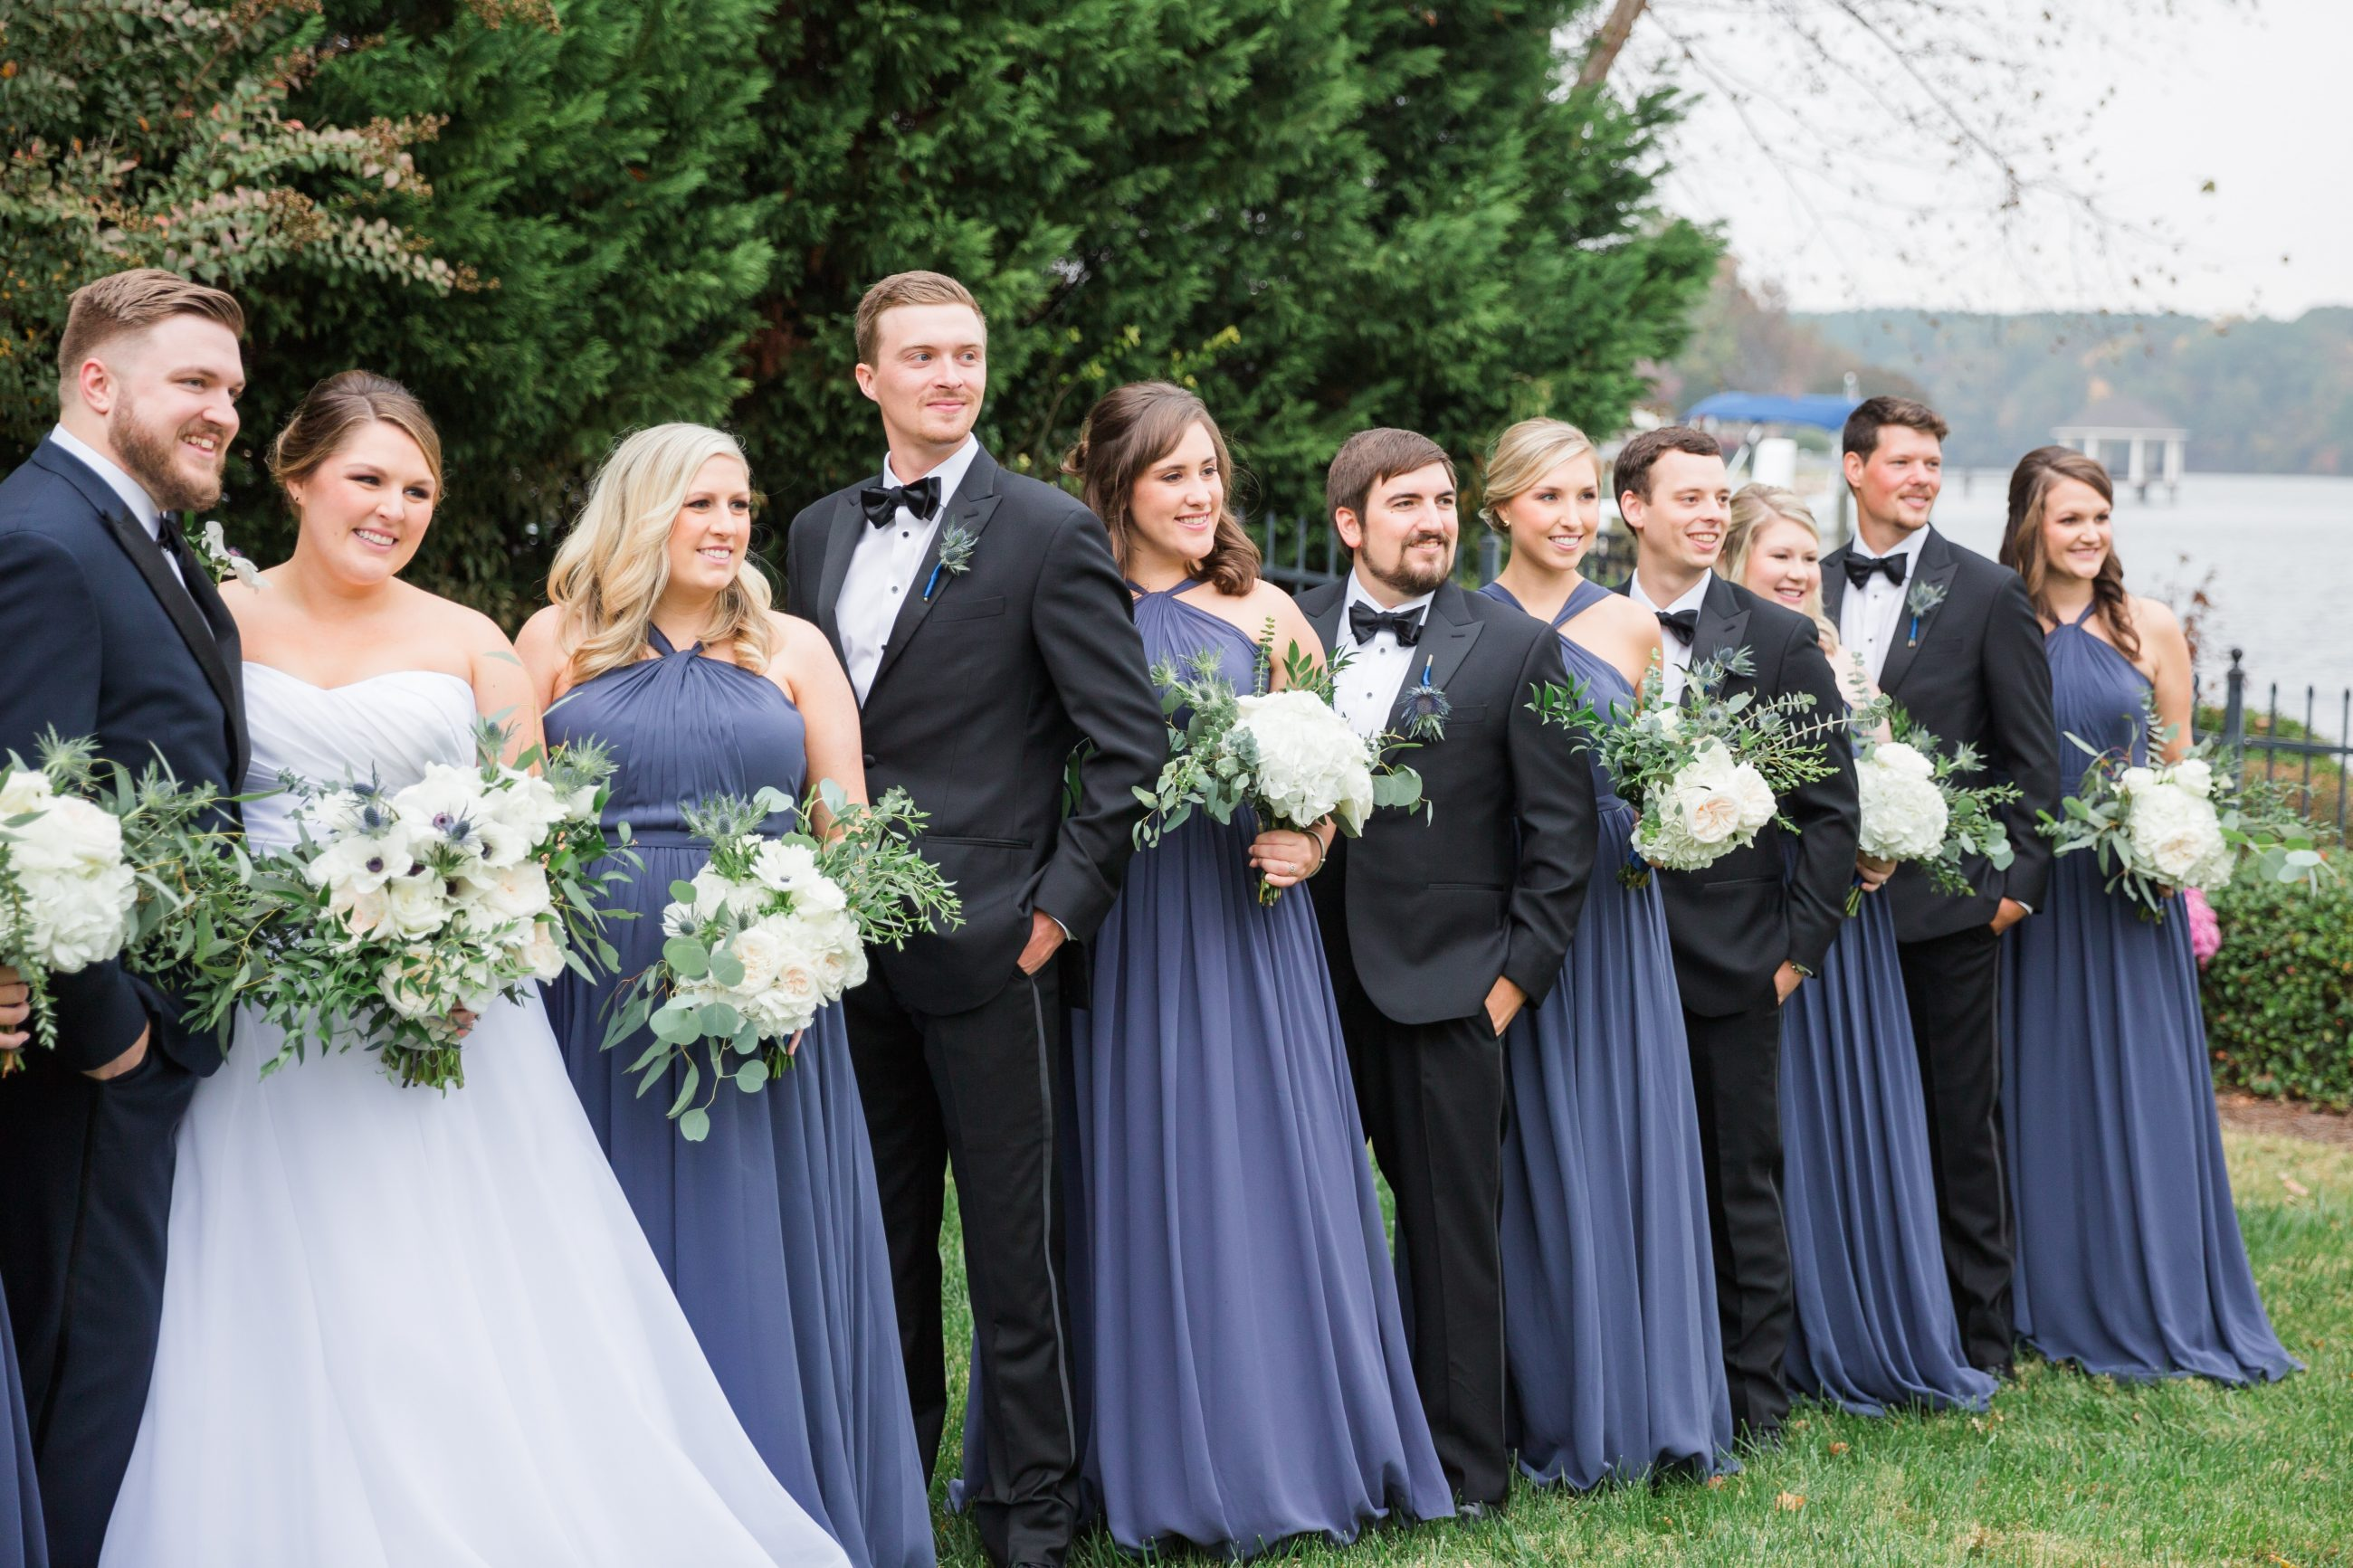 Bridal party in beautiful blue dress captured at Peninsula Yacht Club Wedding